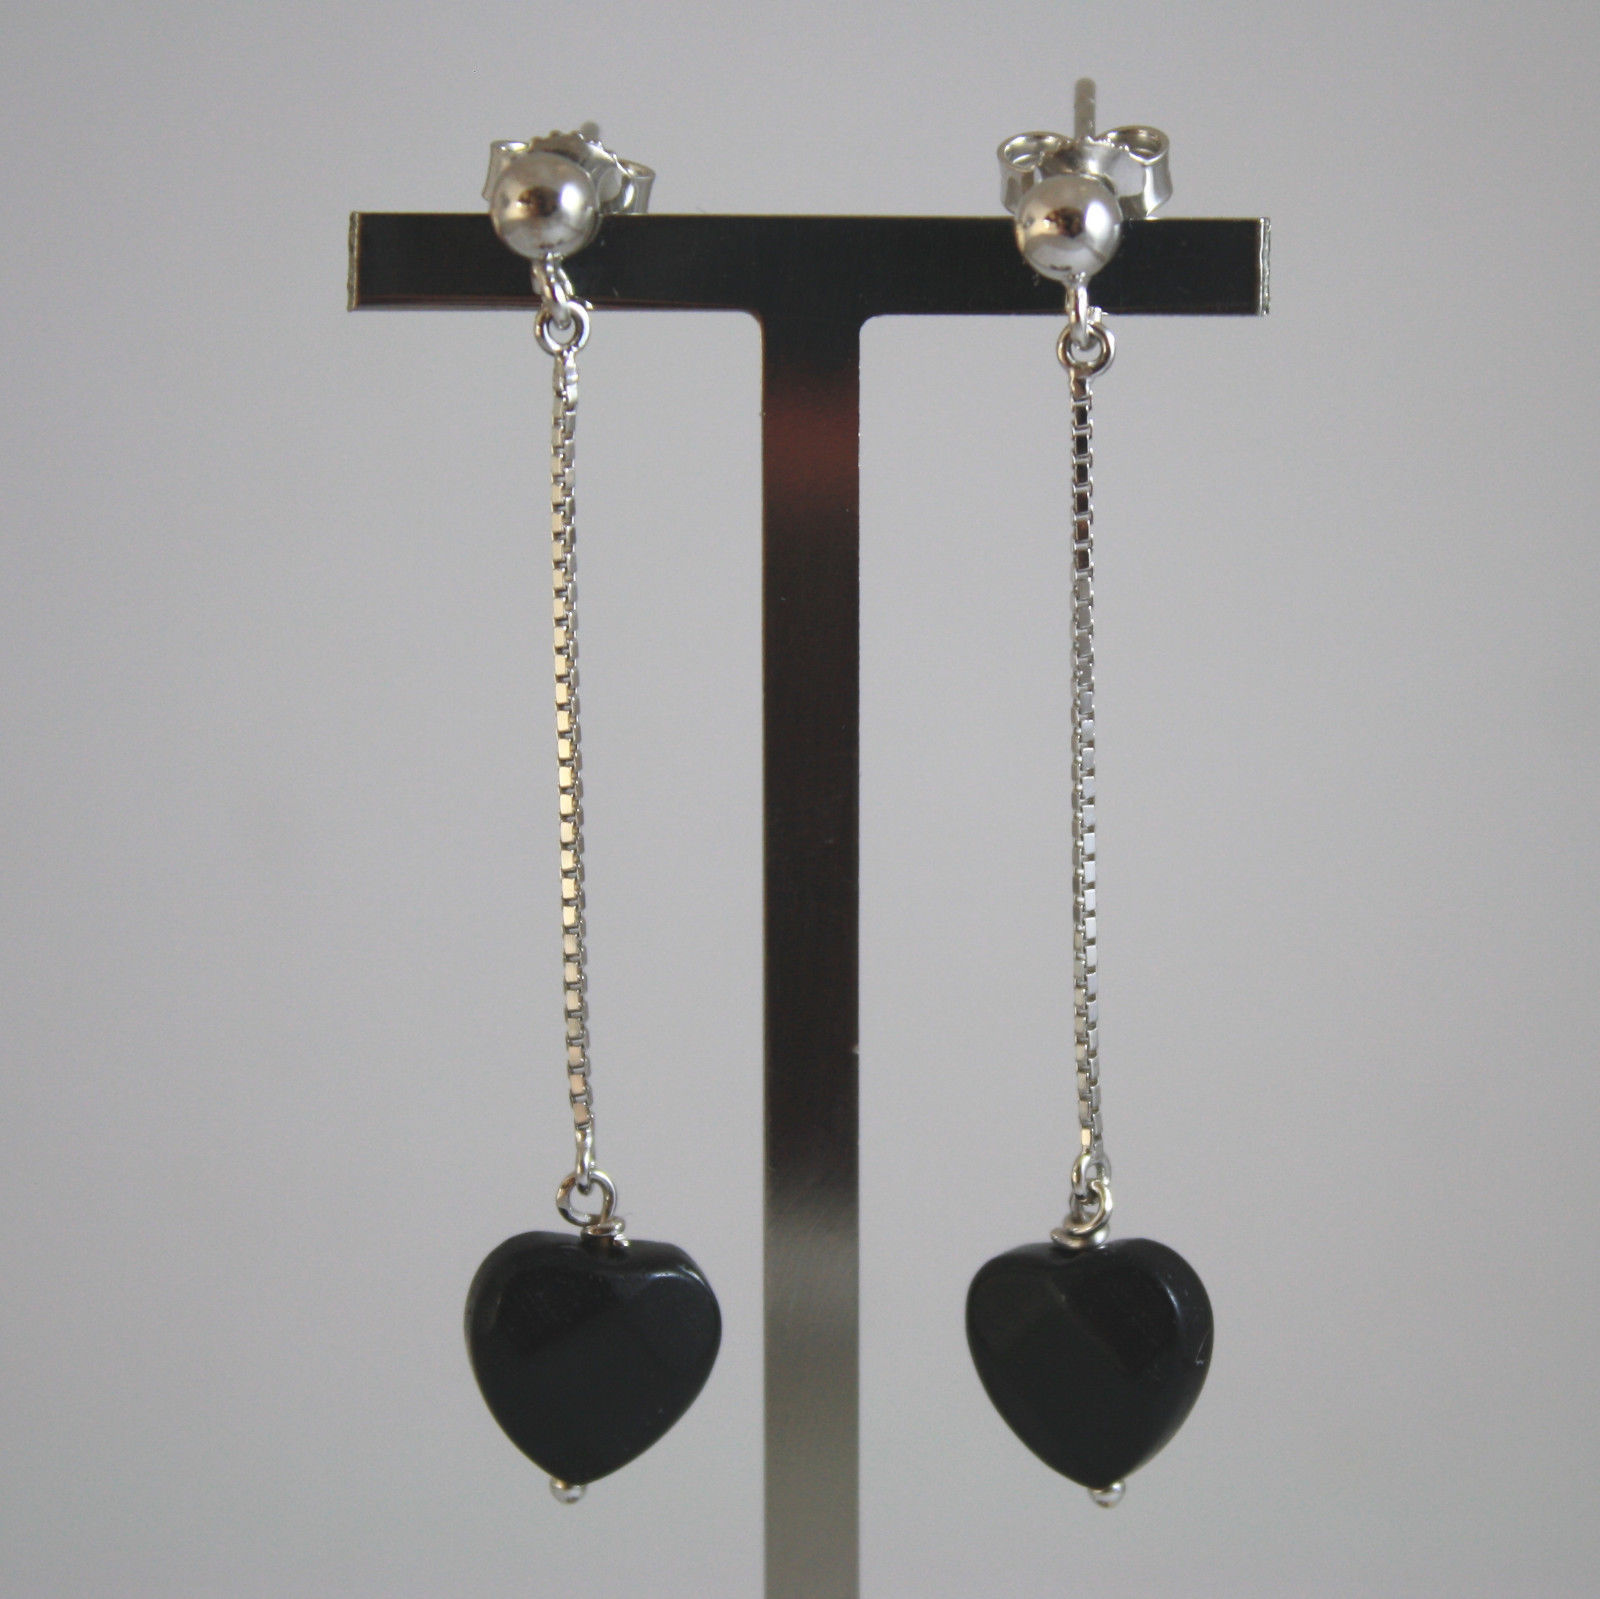 SOLID 18K WHITE GOLD EARRINGS, WITH HEART OF BLACK ONYX, LENGTH 2,09 IN